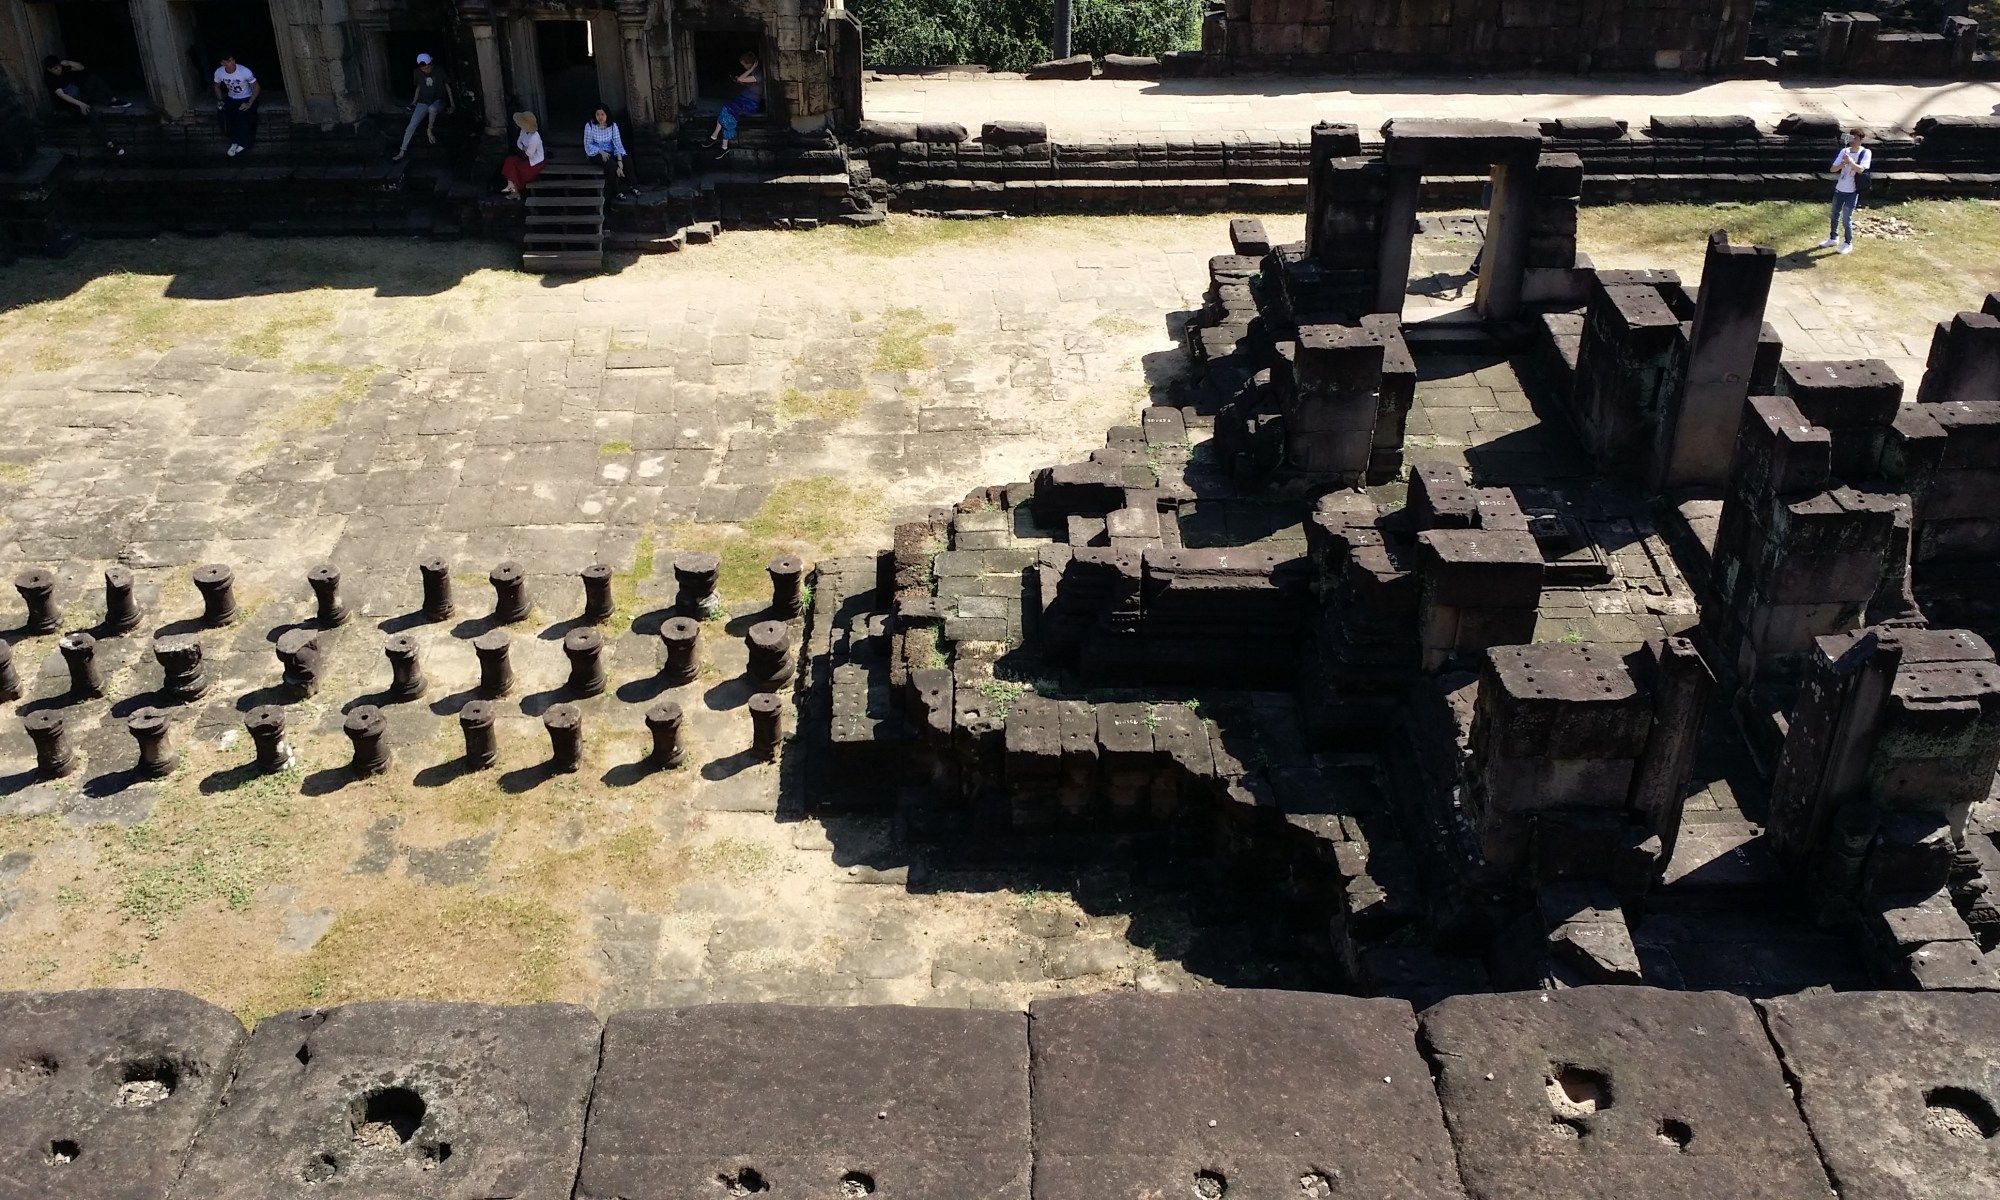 ruins of what was once a walkway/entrance to a Khmer temple